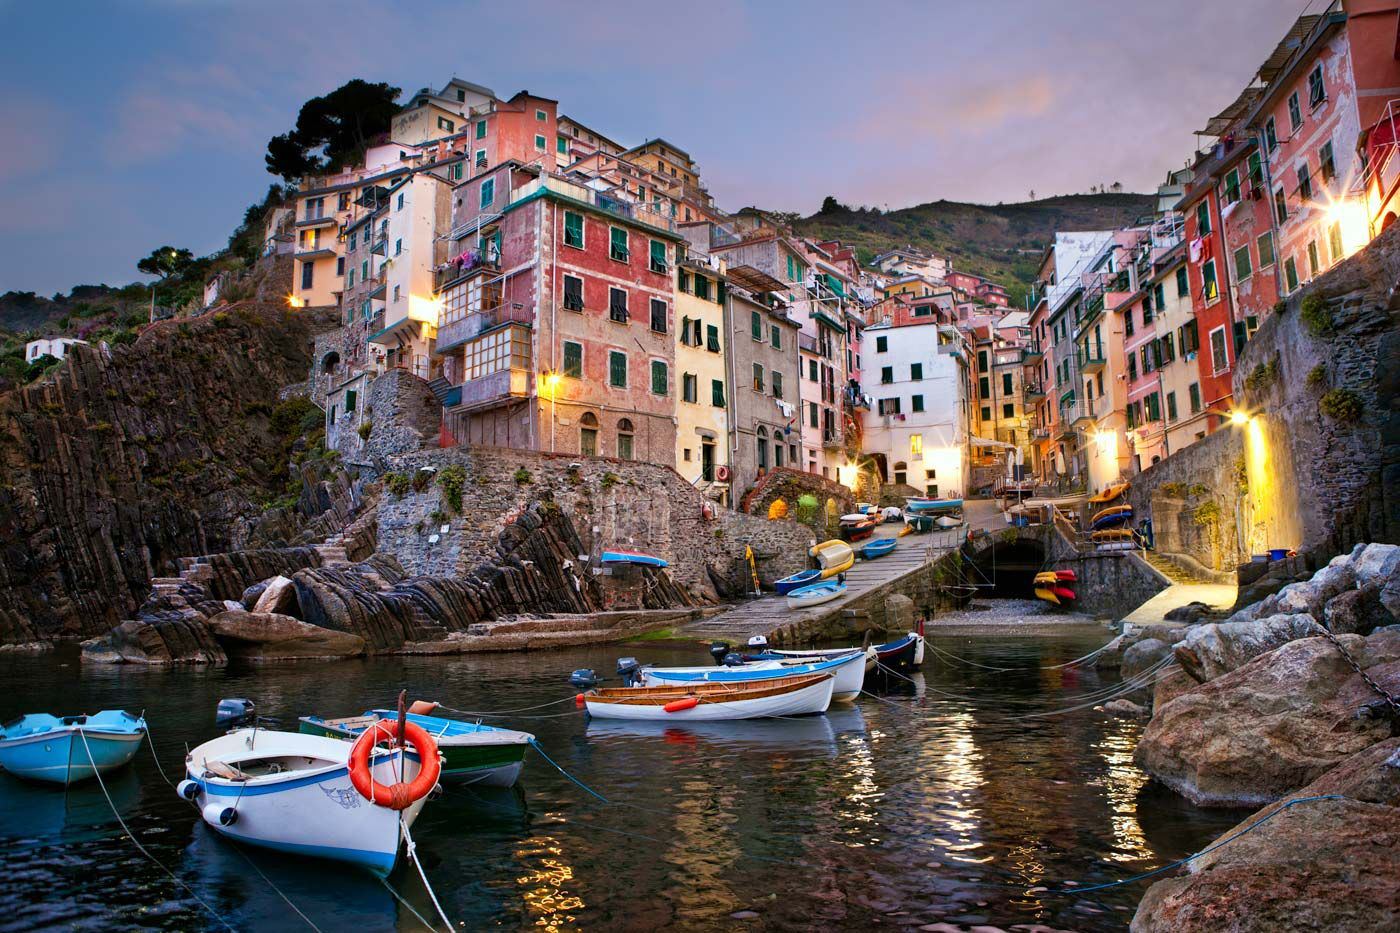 Italy Map Cinque Terre.Map Of The Cinque Terre In Italy Portovenere And Riomaggiore